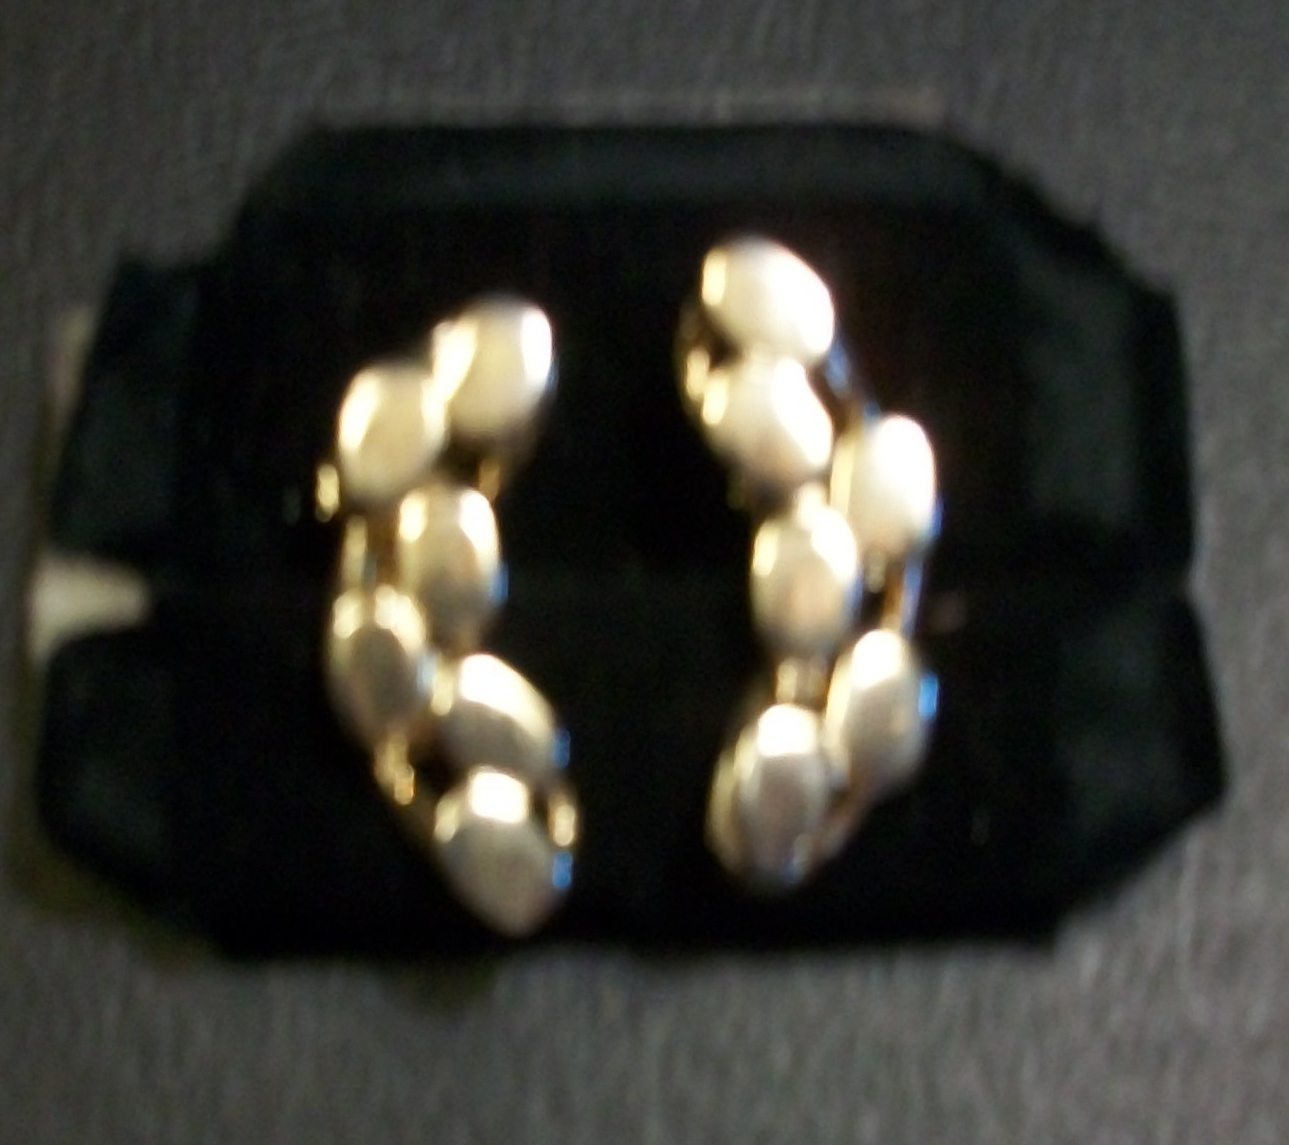 Pristine Shiny Goldtone Vintage Earrings - Clip-On